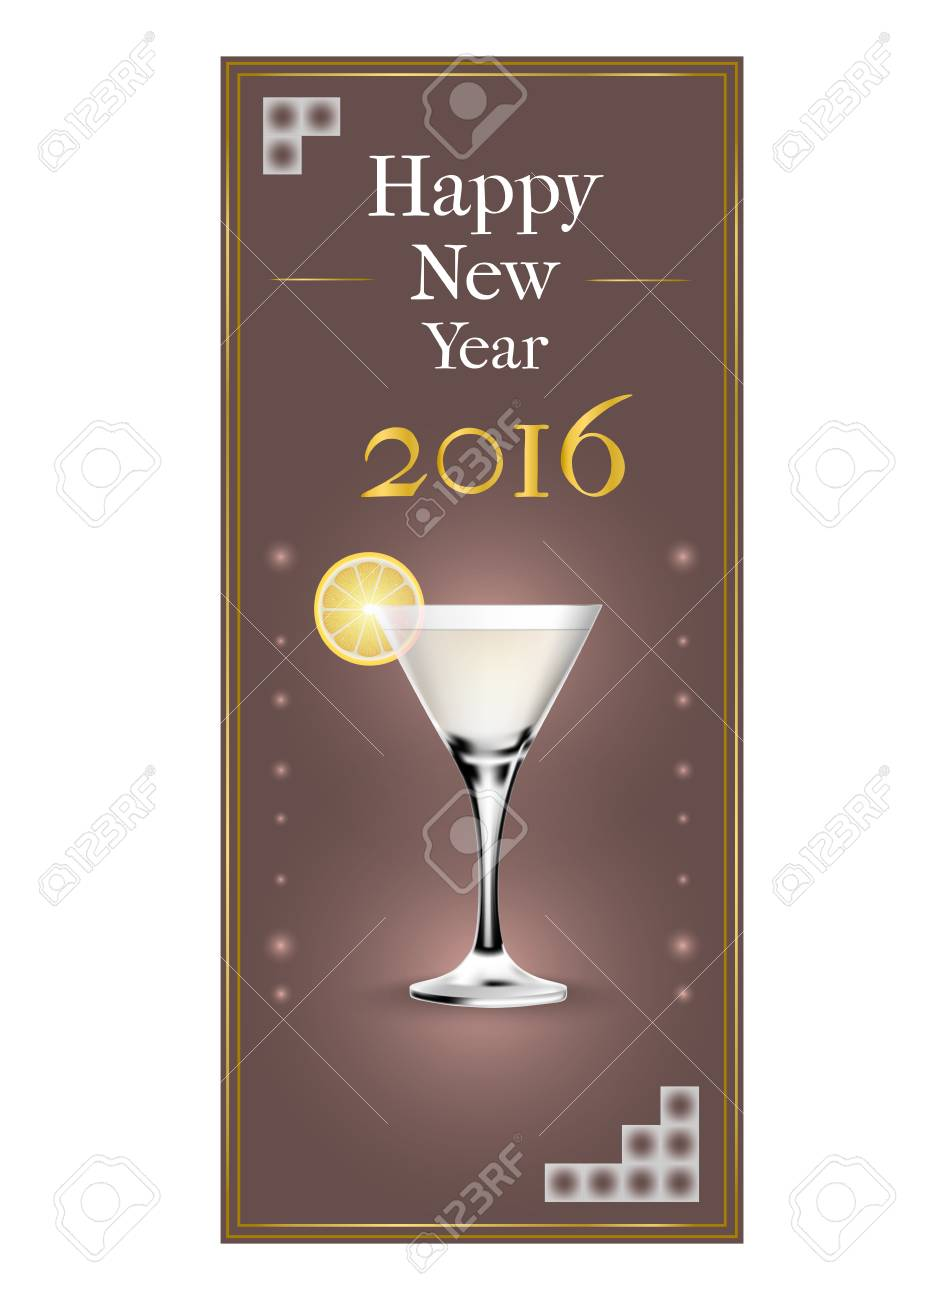 Modern new years party invitation card royalty free cliparts modern new years party invitation card stock vector 50176846 stopboris Images